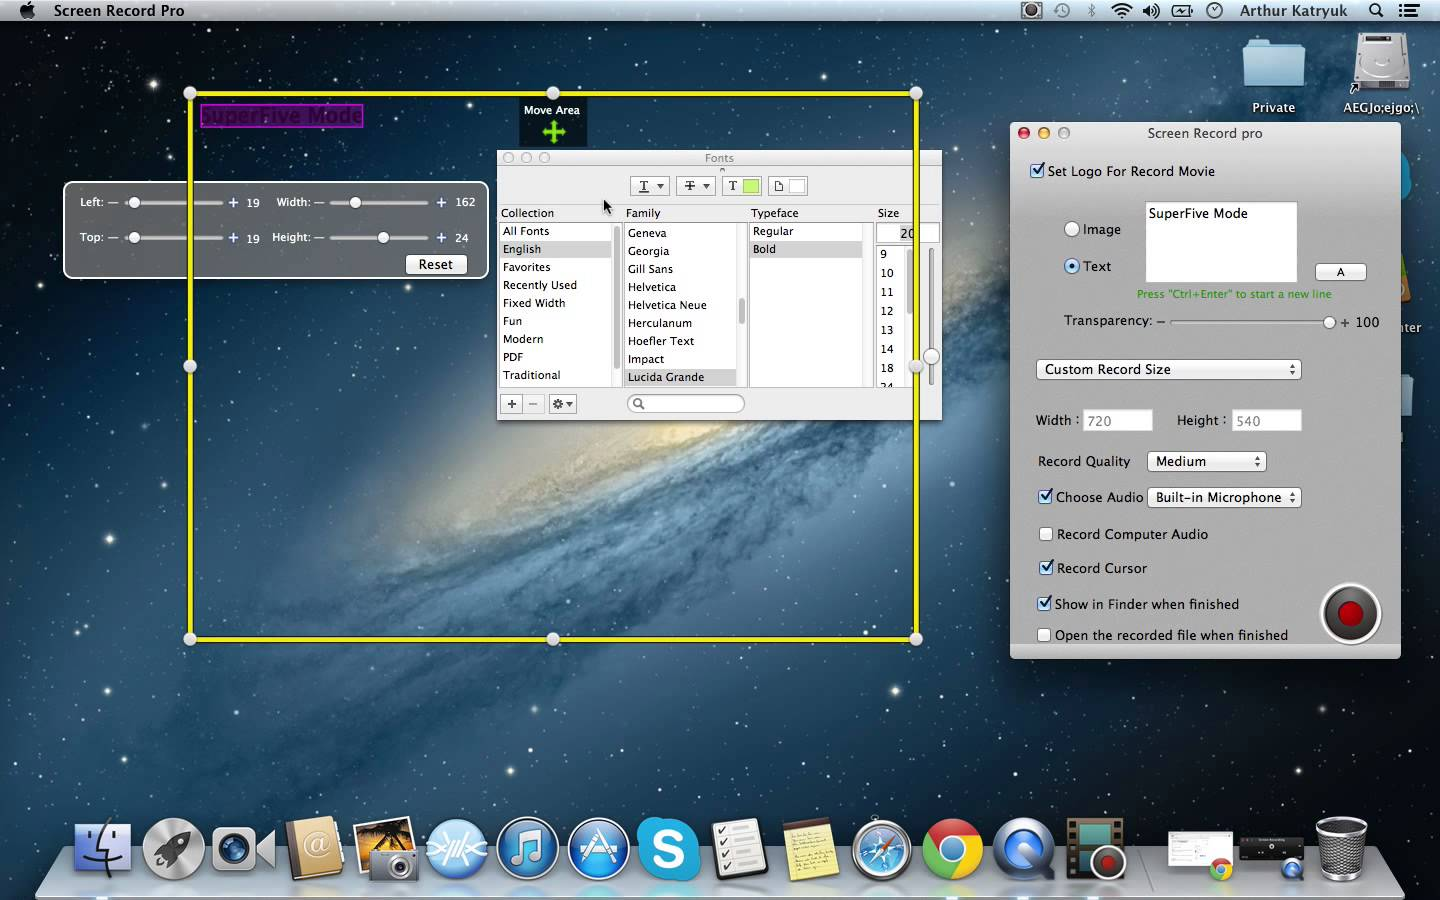 how to use the screen recorder on window